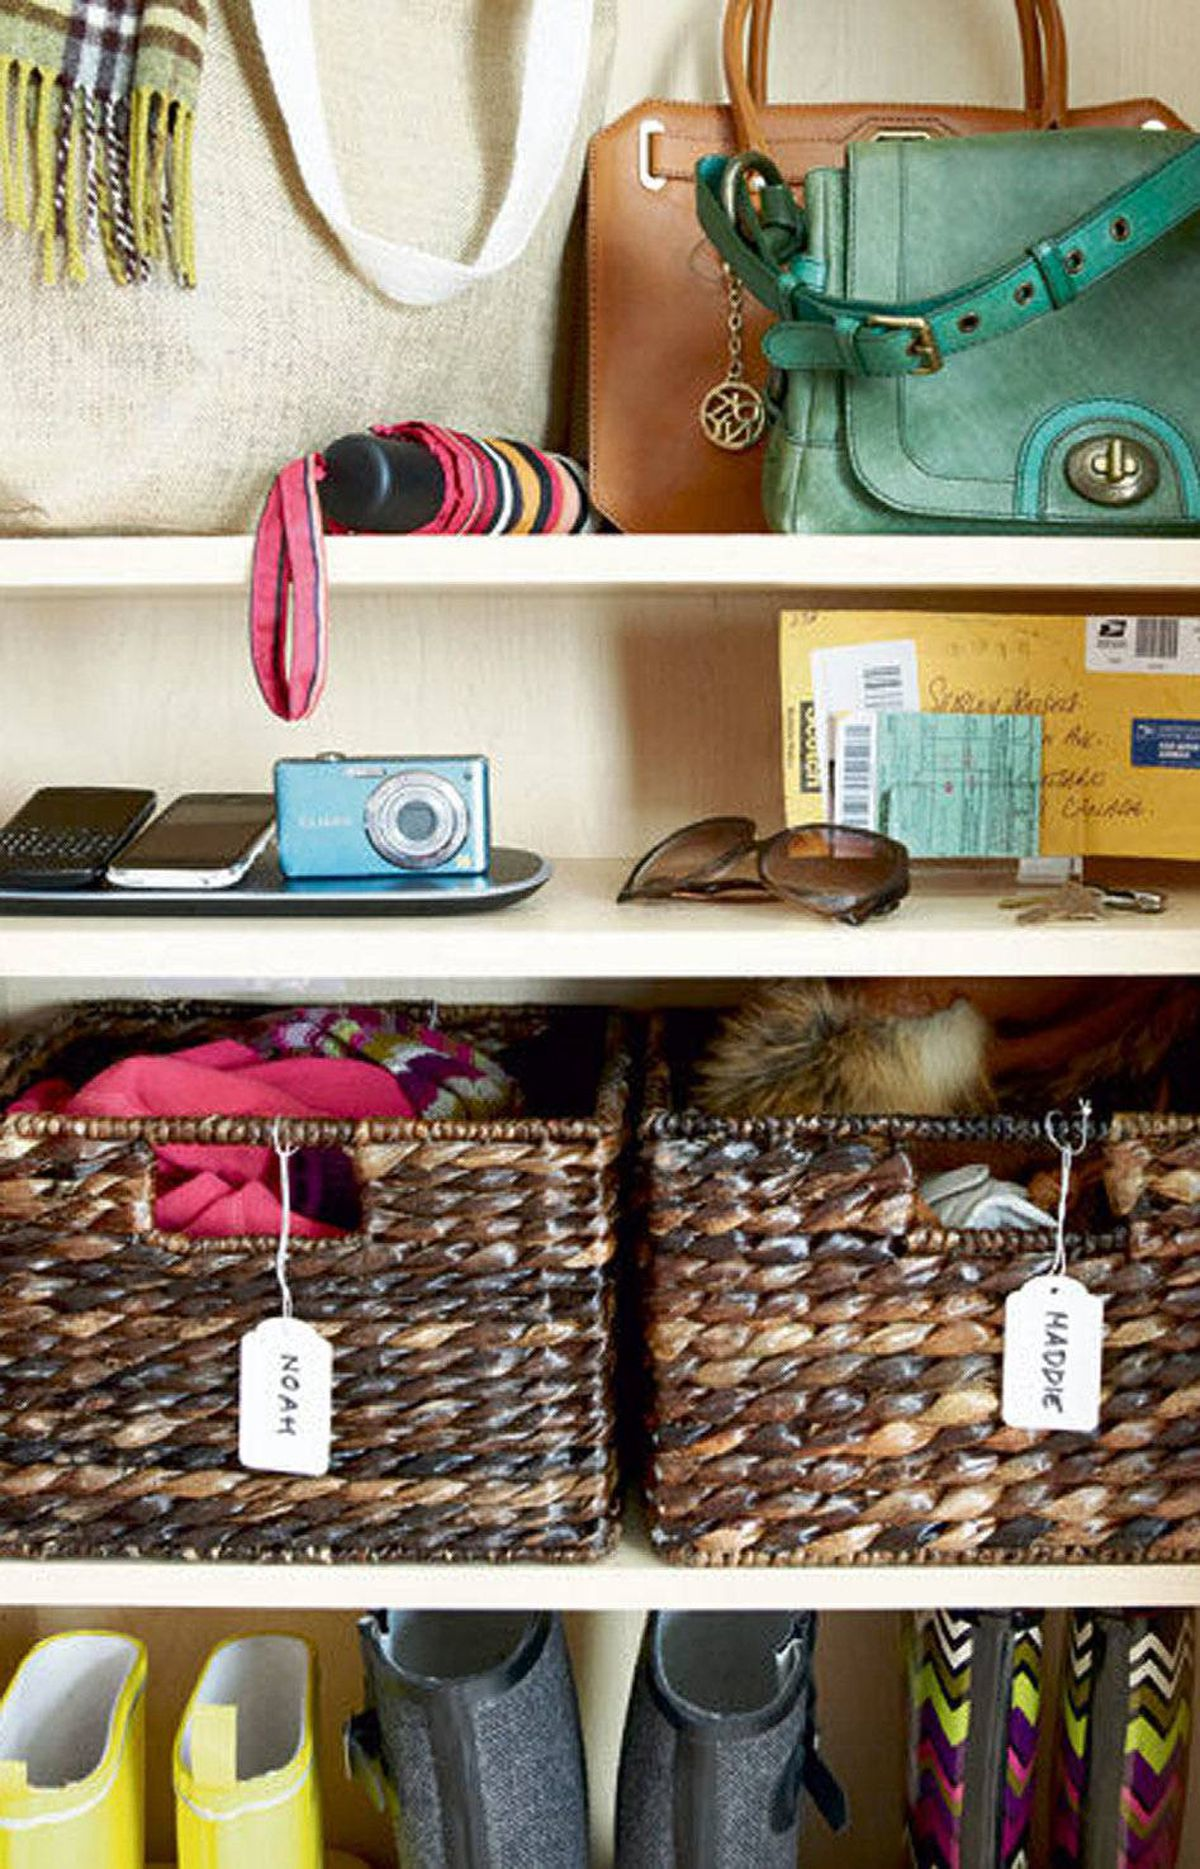 RETHINK YOUR FRONT HALL CLOSET Repurpose a closet into a convenient storage space. Try organizing by person instead of by item. Where to buy: Powermat 3X Mat with Powercube, $79.99 at The Bay (www.thebay.com) Havana utility baskets, $24.32 to $49.92 at Pottery Barn (www.potterybarn.ca)